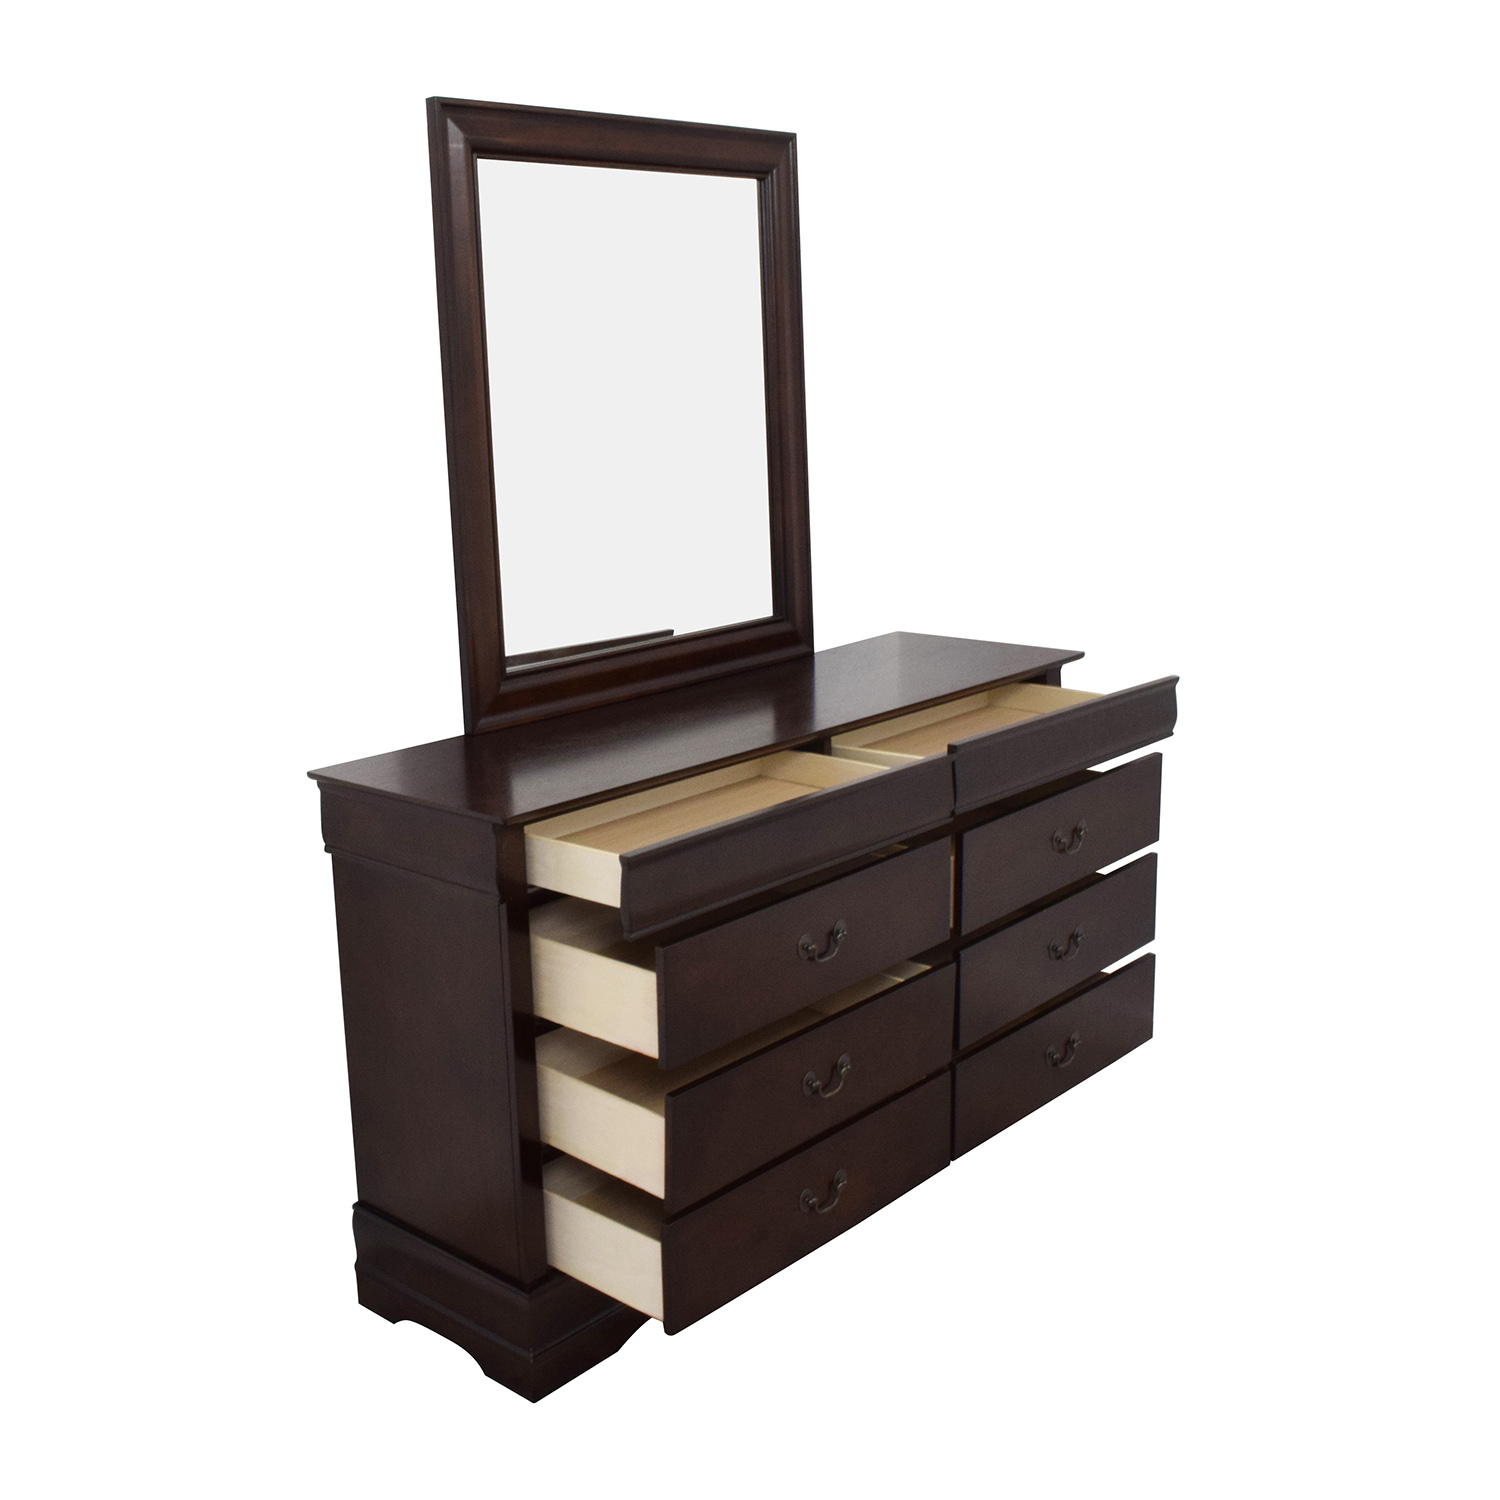 Home Meridian International Home Meridian International Eight-Drawer Dresser with Mirror brown